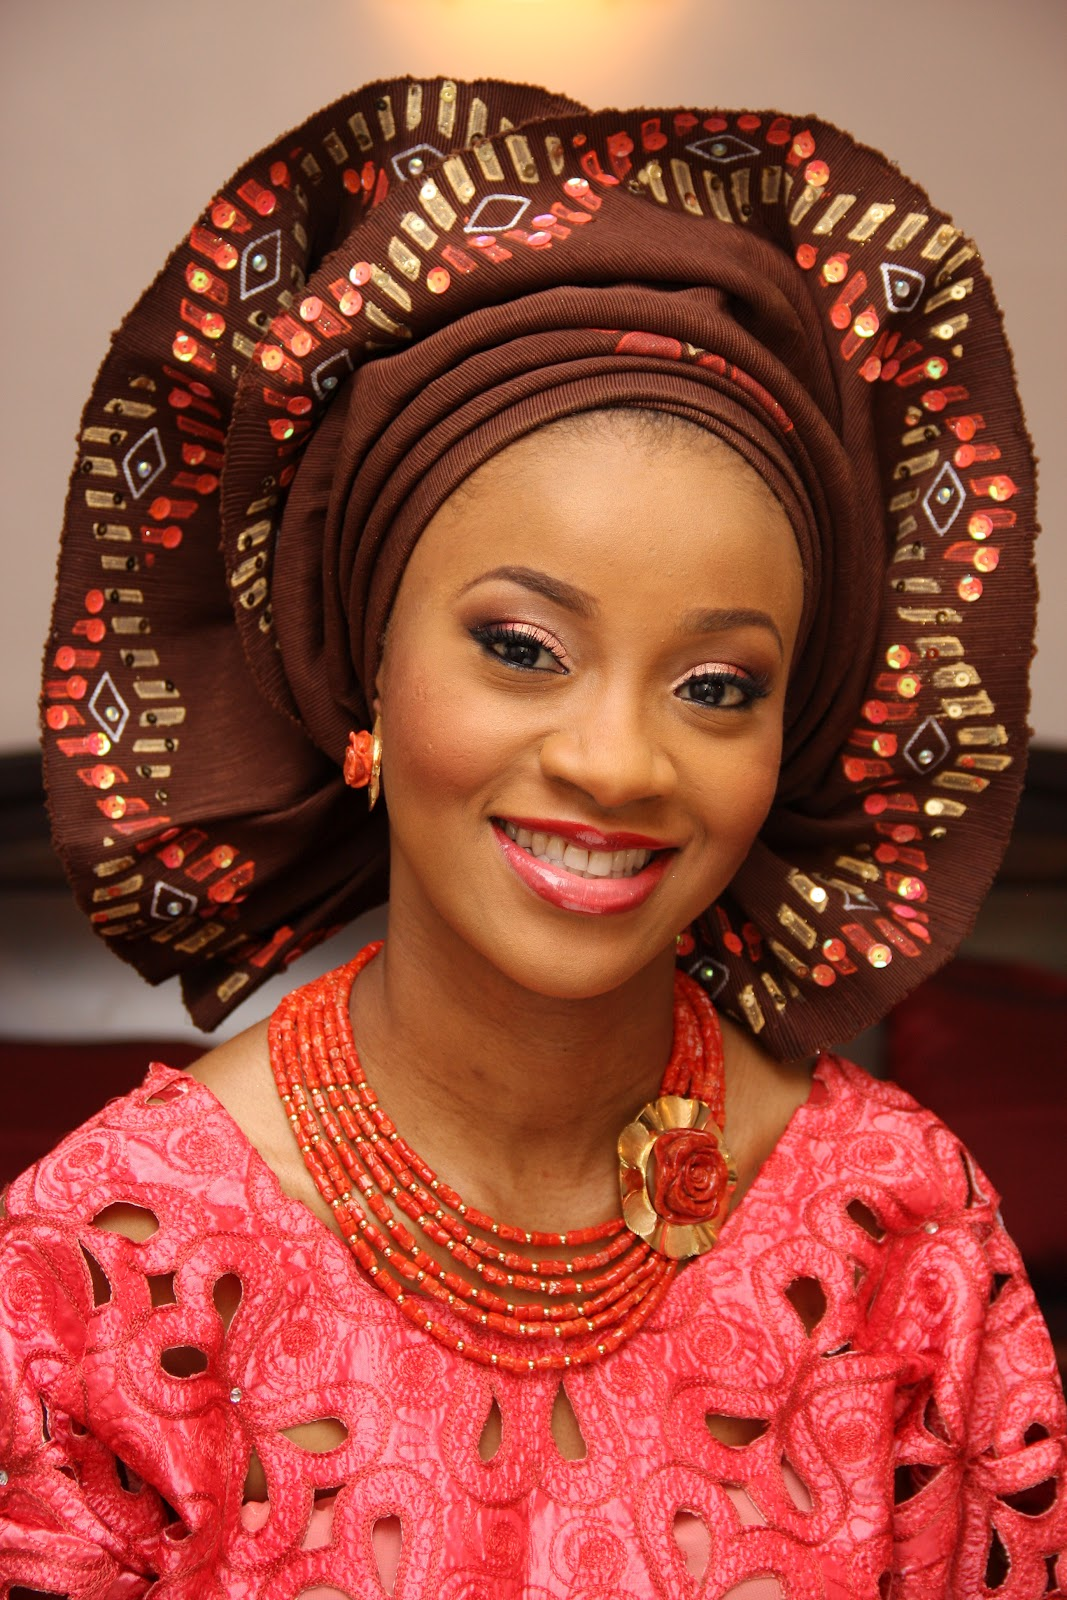 Traditional Wedding Makeup Tutorial : Nigerian Traditional Wedding Makeup Tutorial MAHA MAVEN